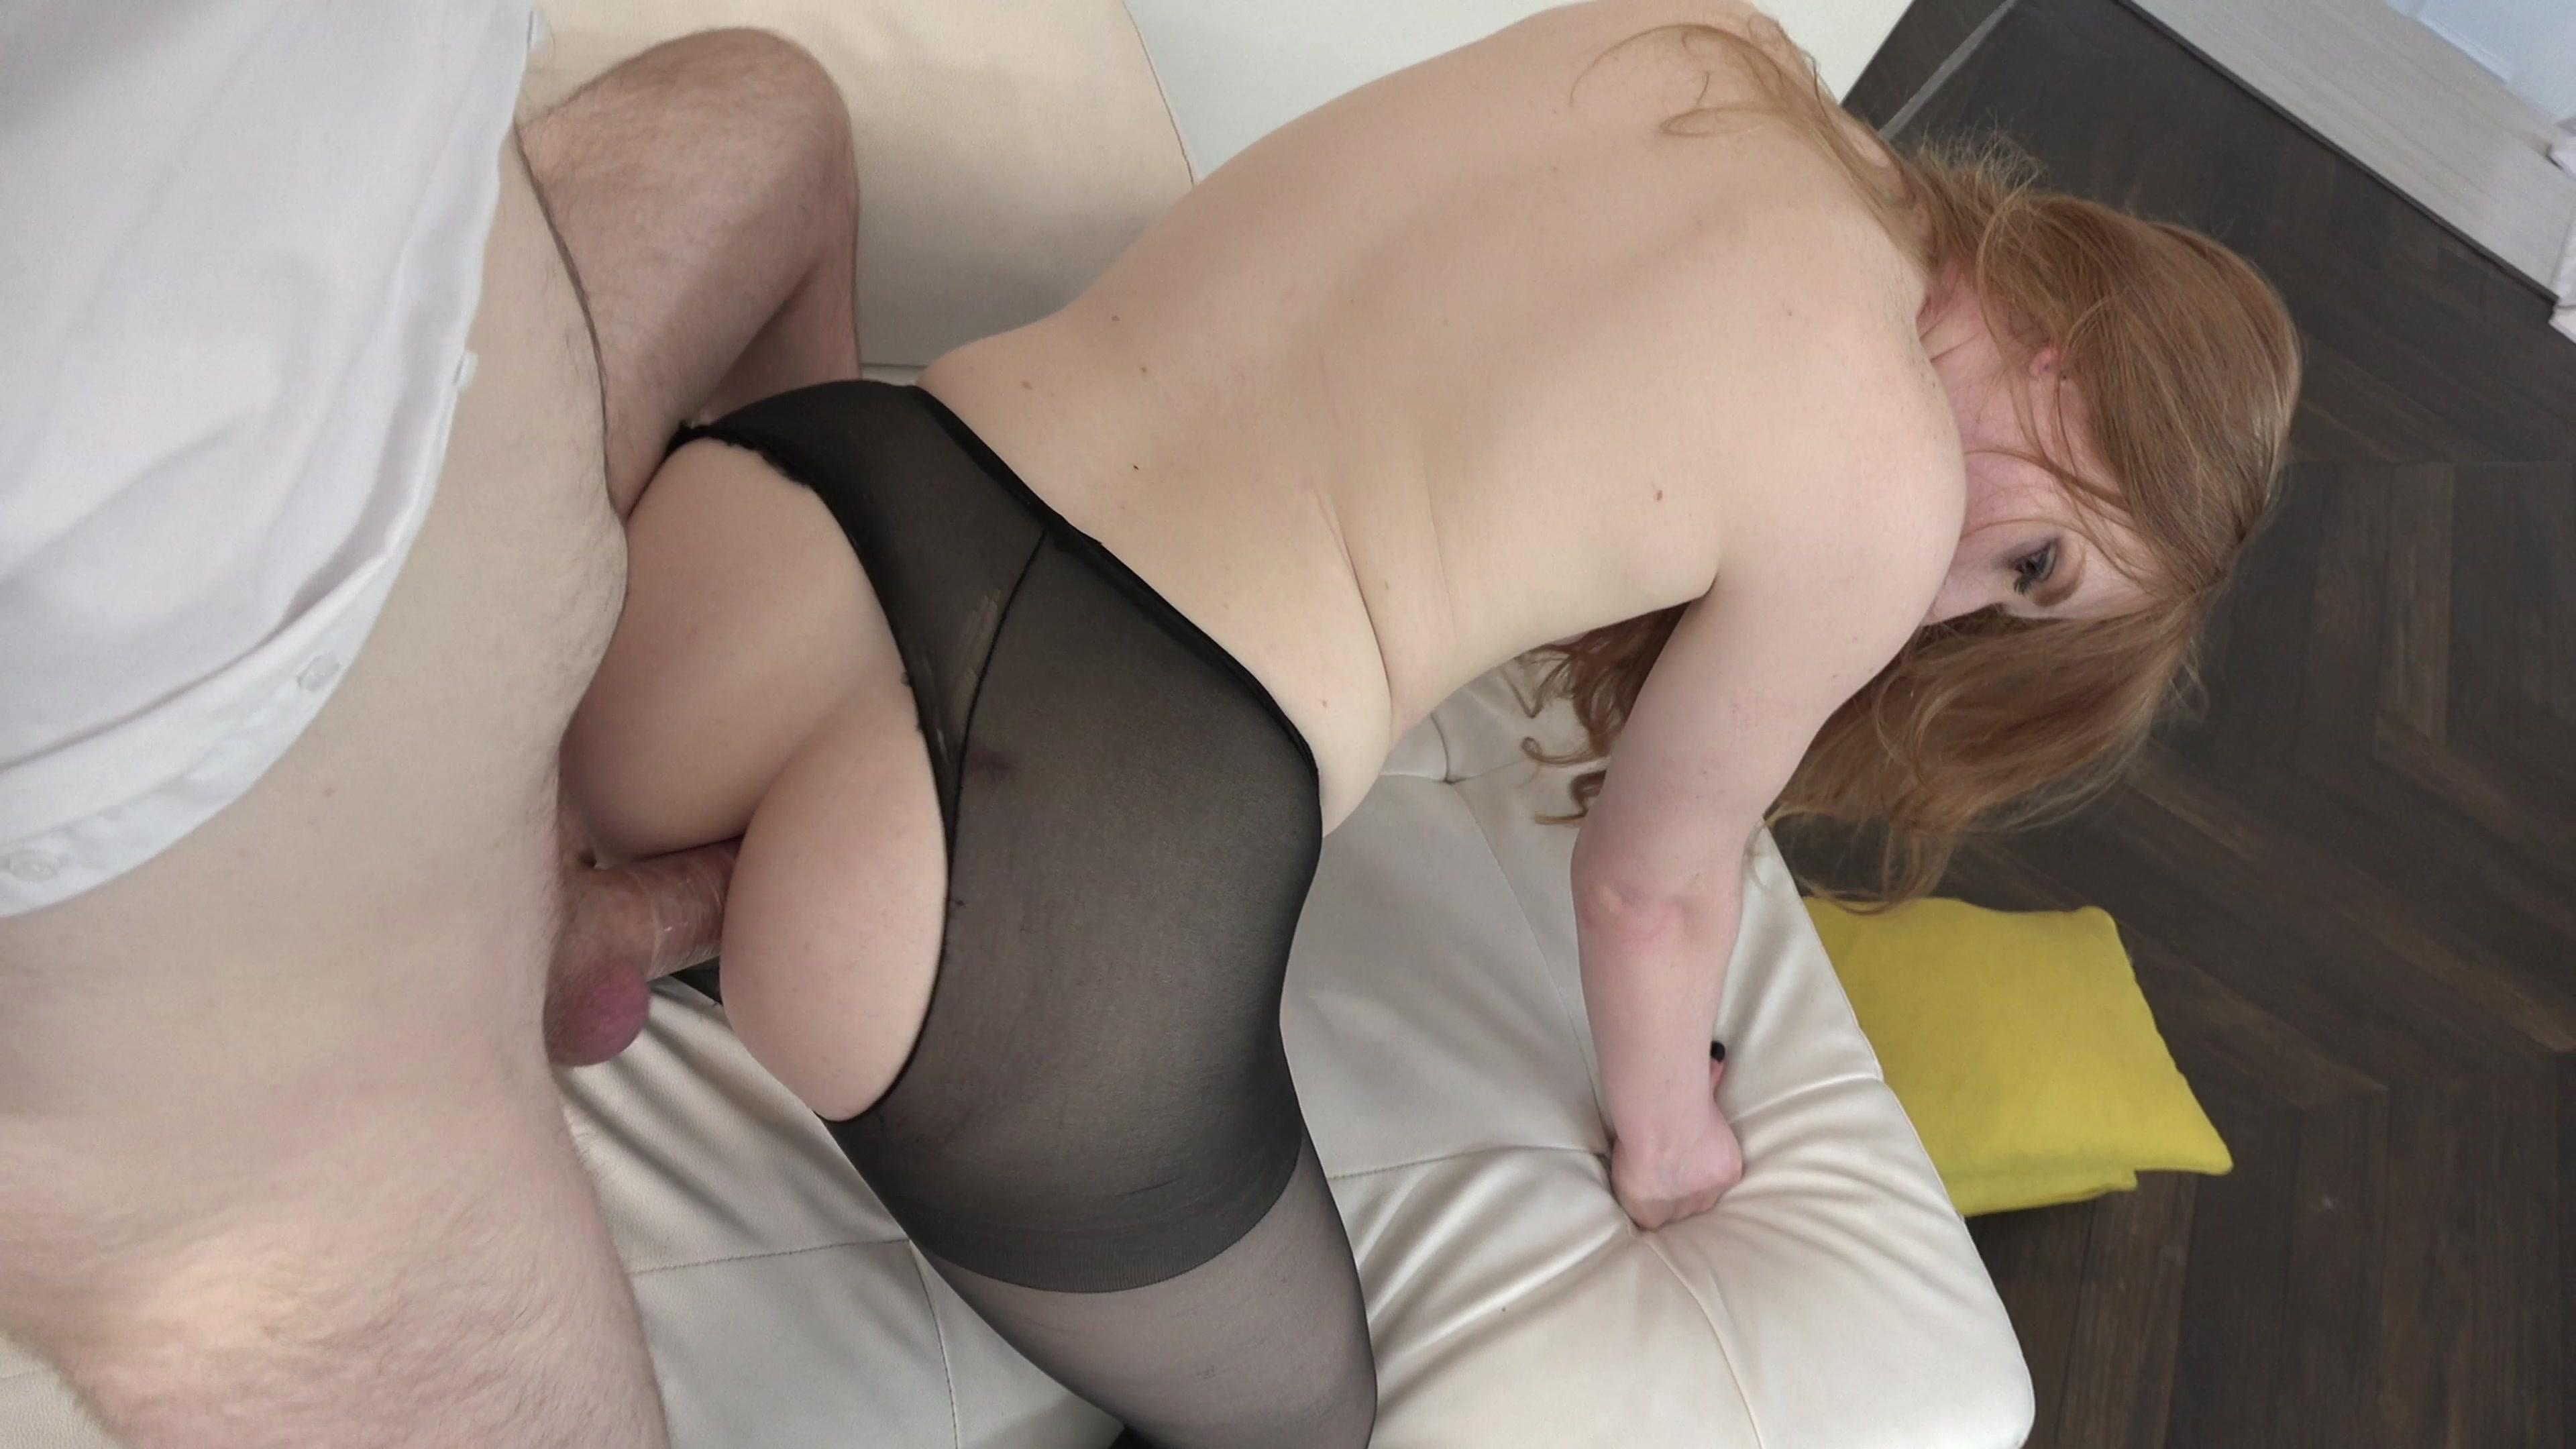 Pussy pantyhose fuckers vol blondssex positions nude